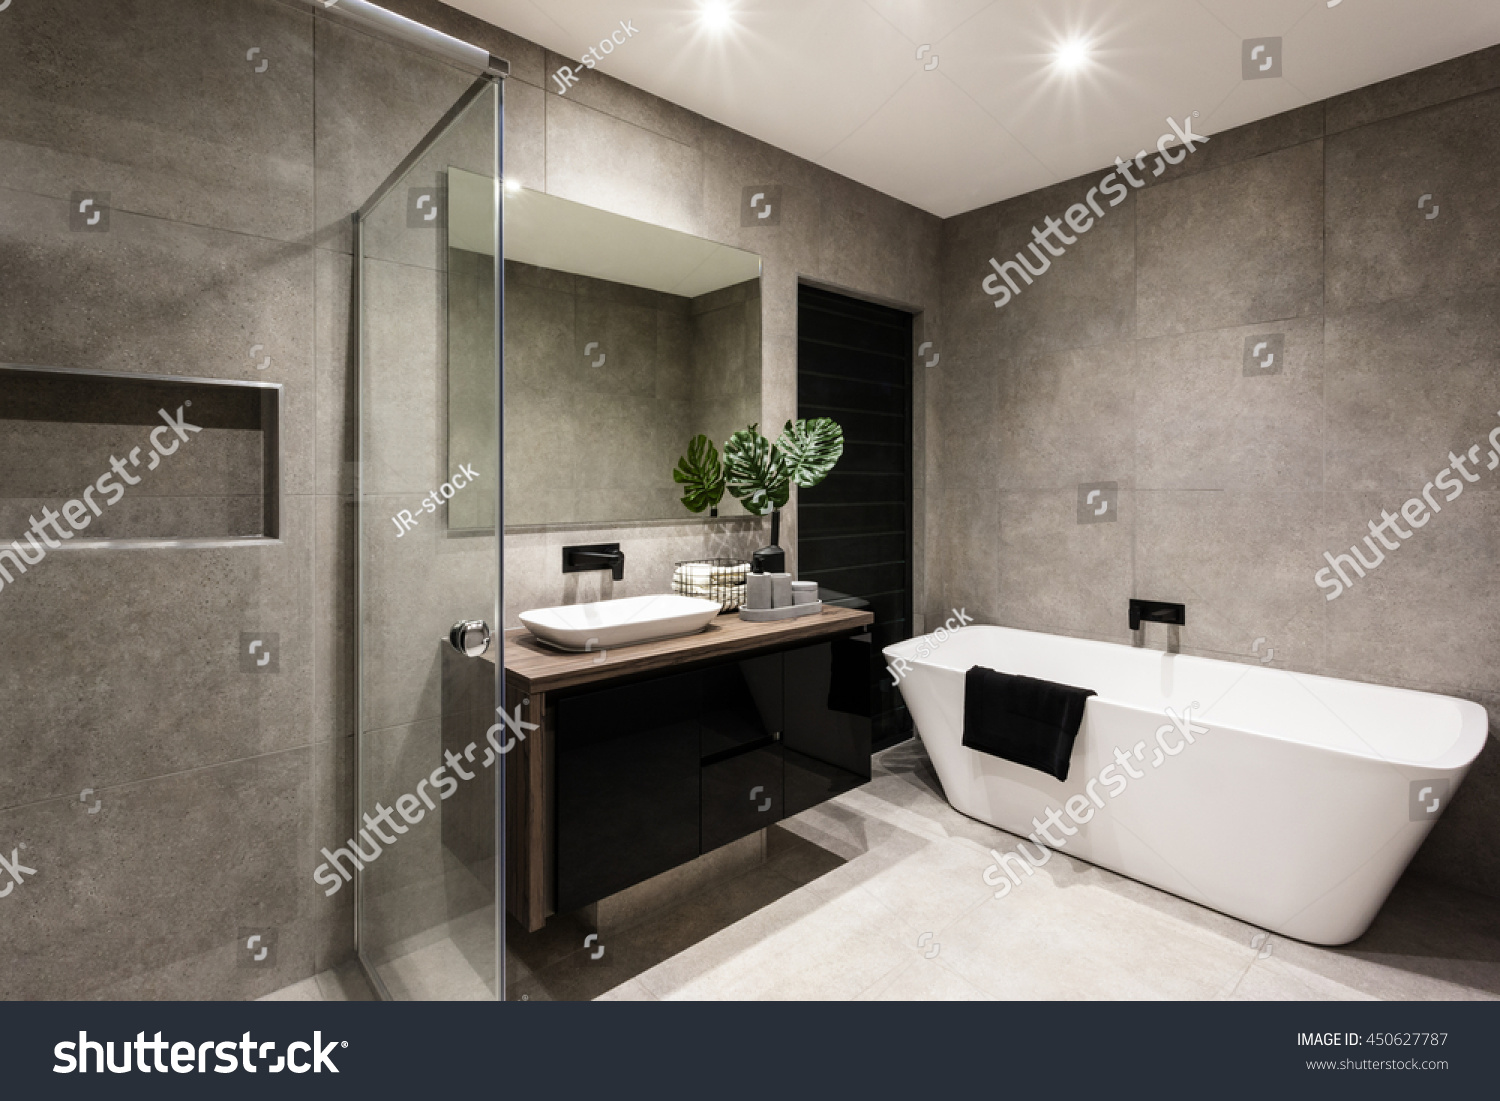 Modern Bathroom With A Shower Area And Bath Tub Including A Wall Mirror Besid